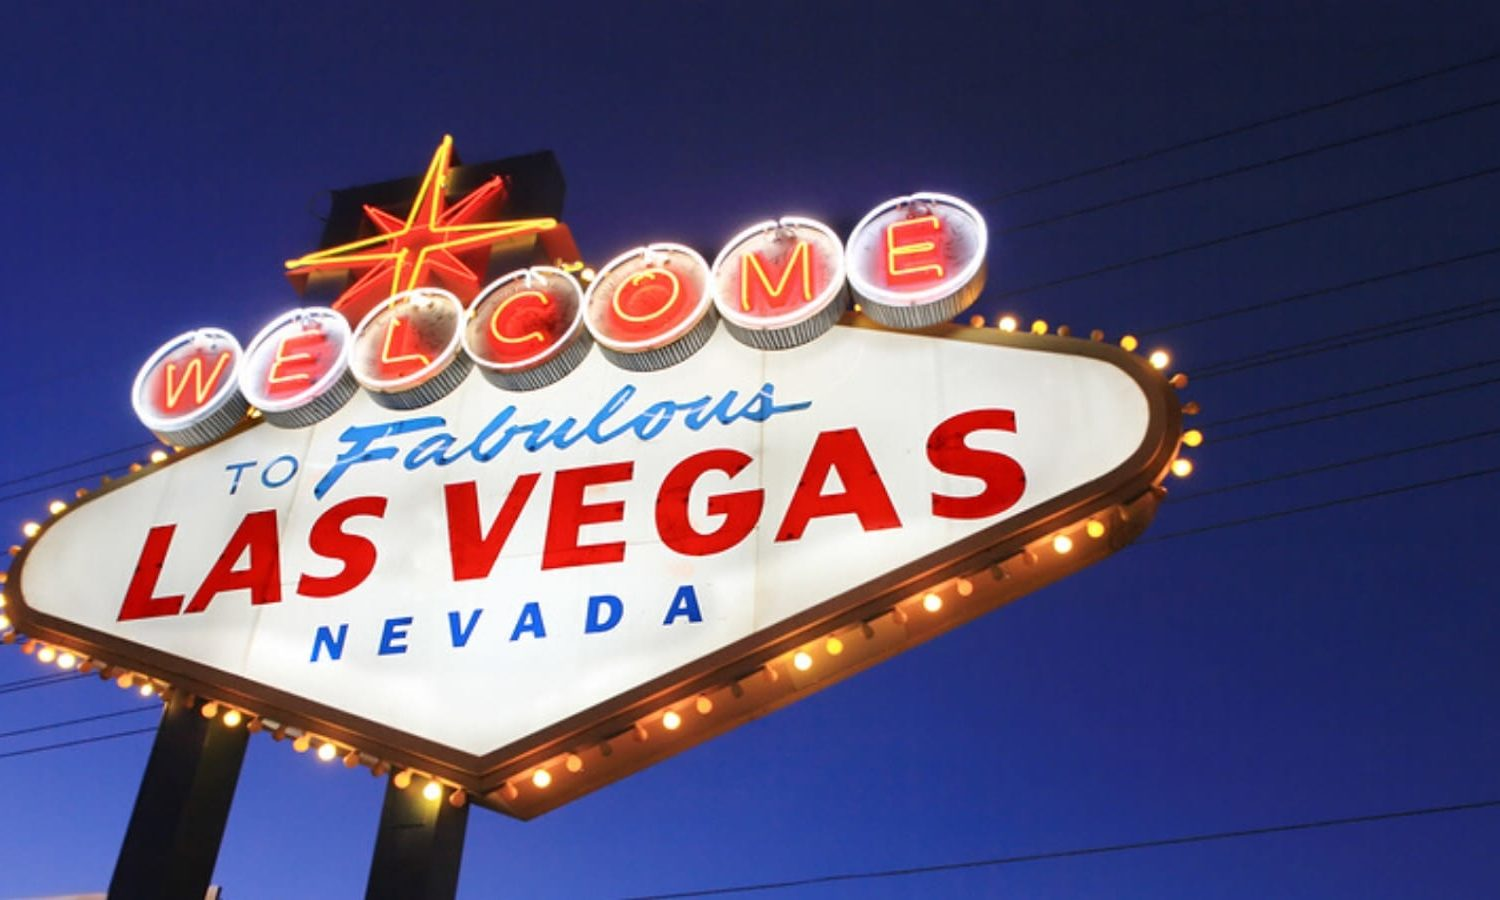 GyPSy Guide Audio Driving Tour App Las Vegas